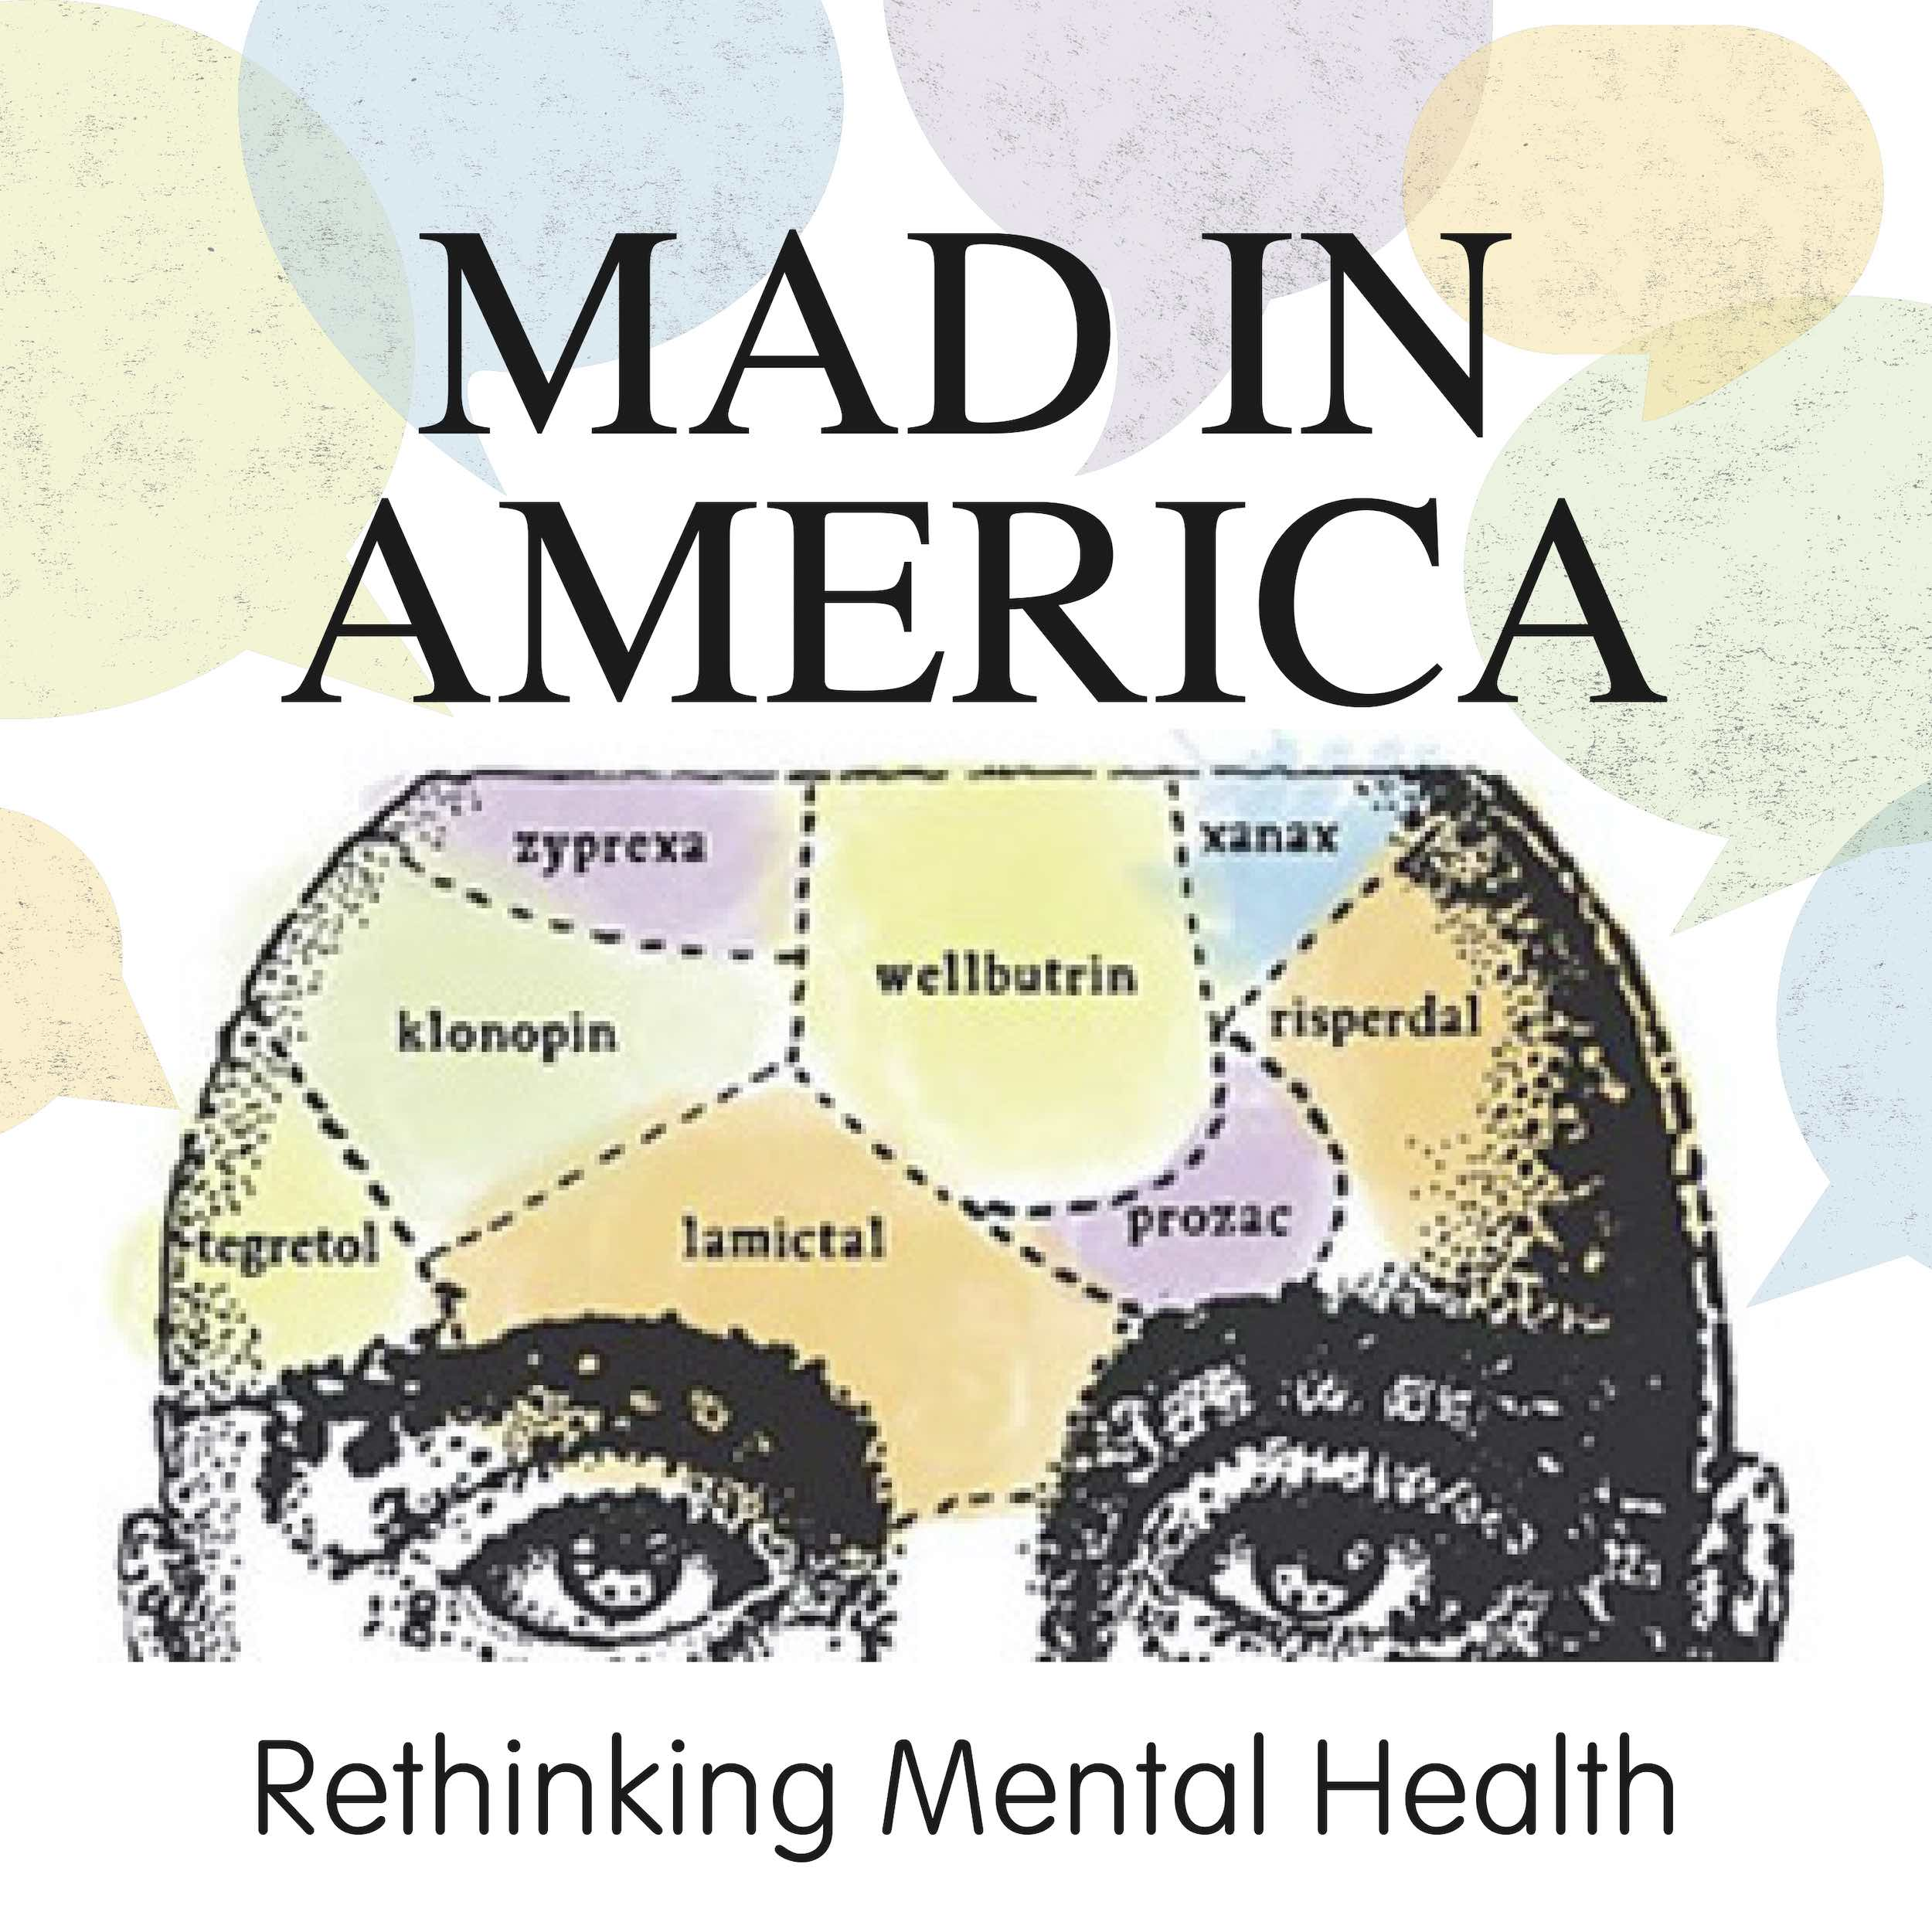 Mad in America: Rethinking Mental Health - Sherry Julo, Ed White and John Read – Online Support Groups for Psychiatric Drug Withdrawal